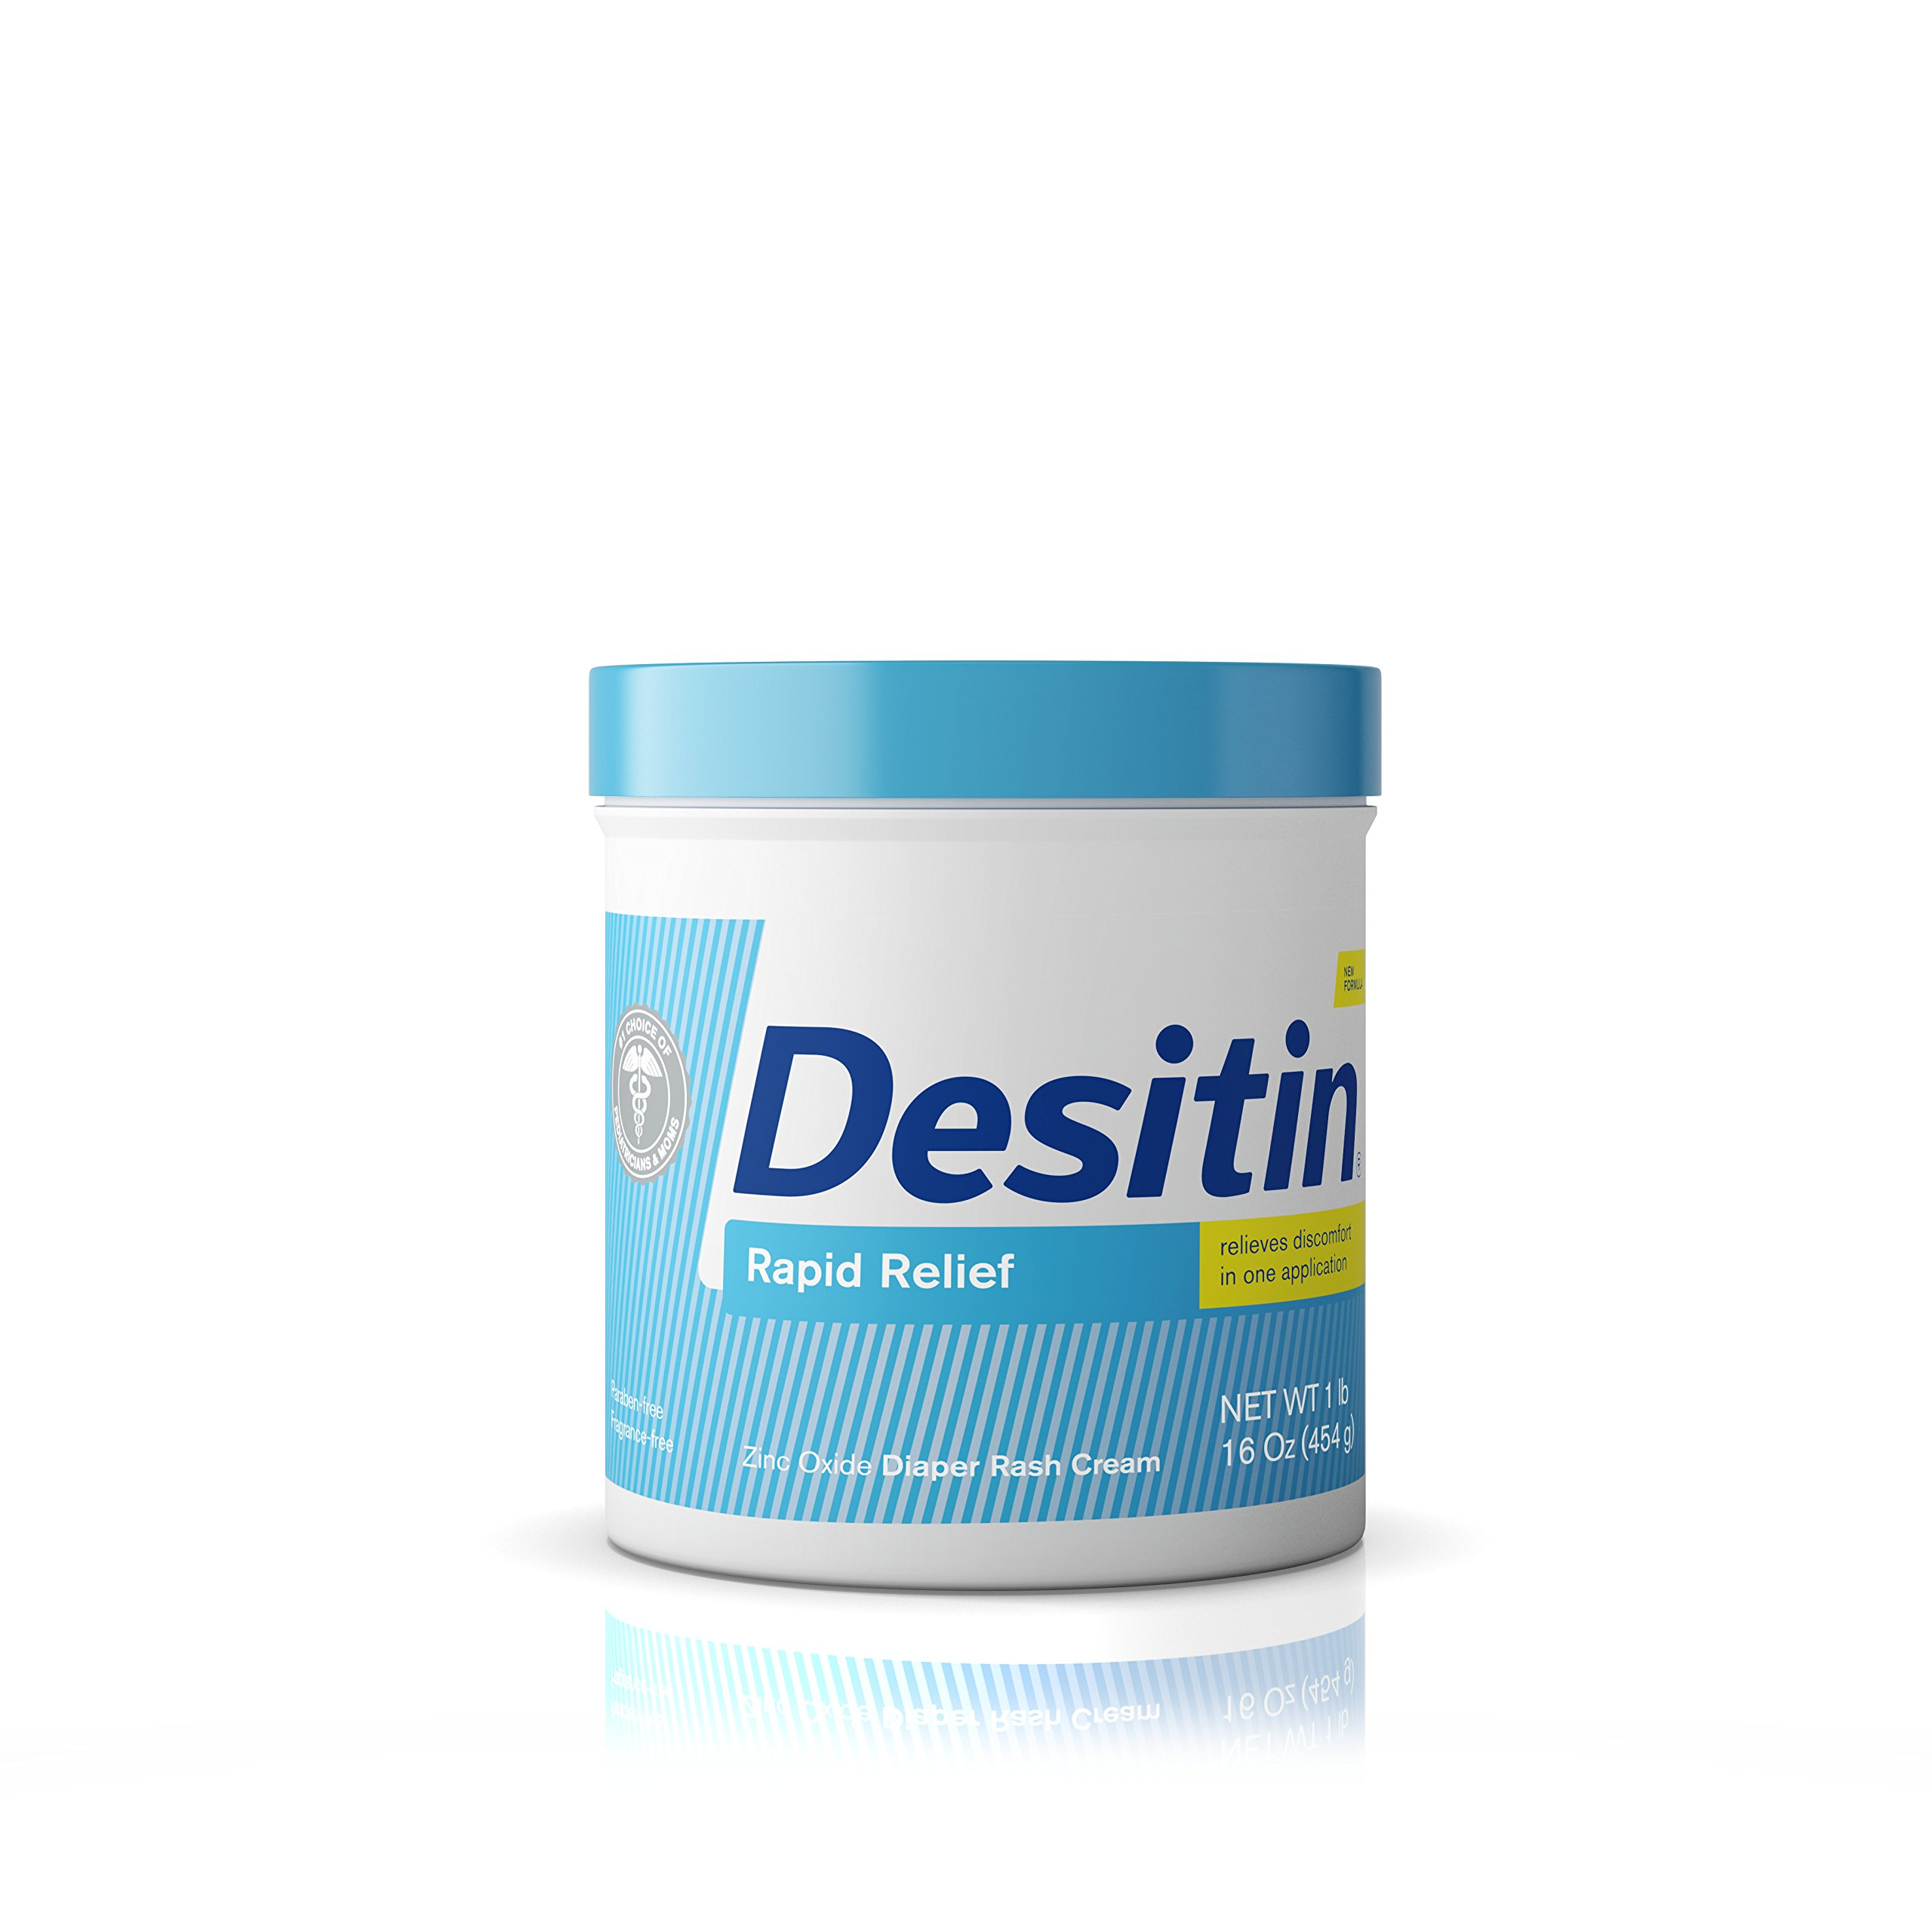 Desitin Daily Defense Baby Diaper Rash Cream with Zinc Oxide to Treat, Relieve & Prevent